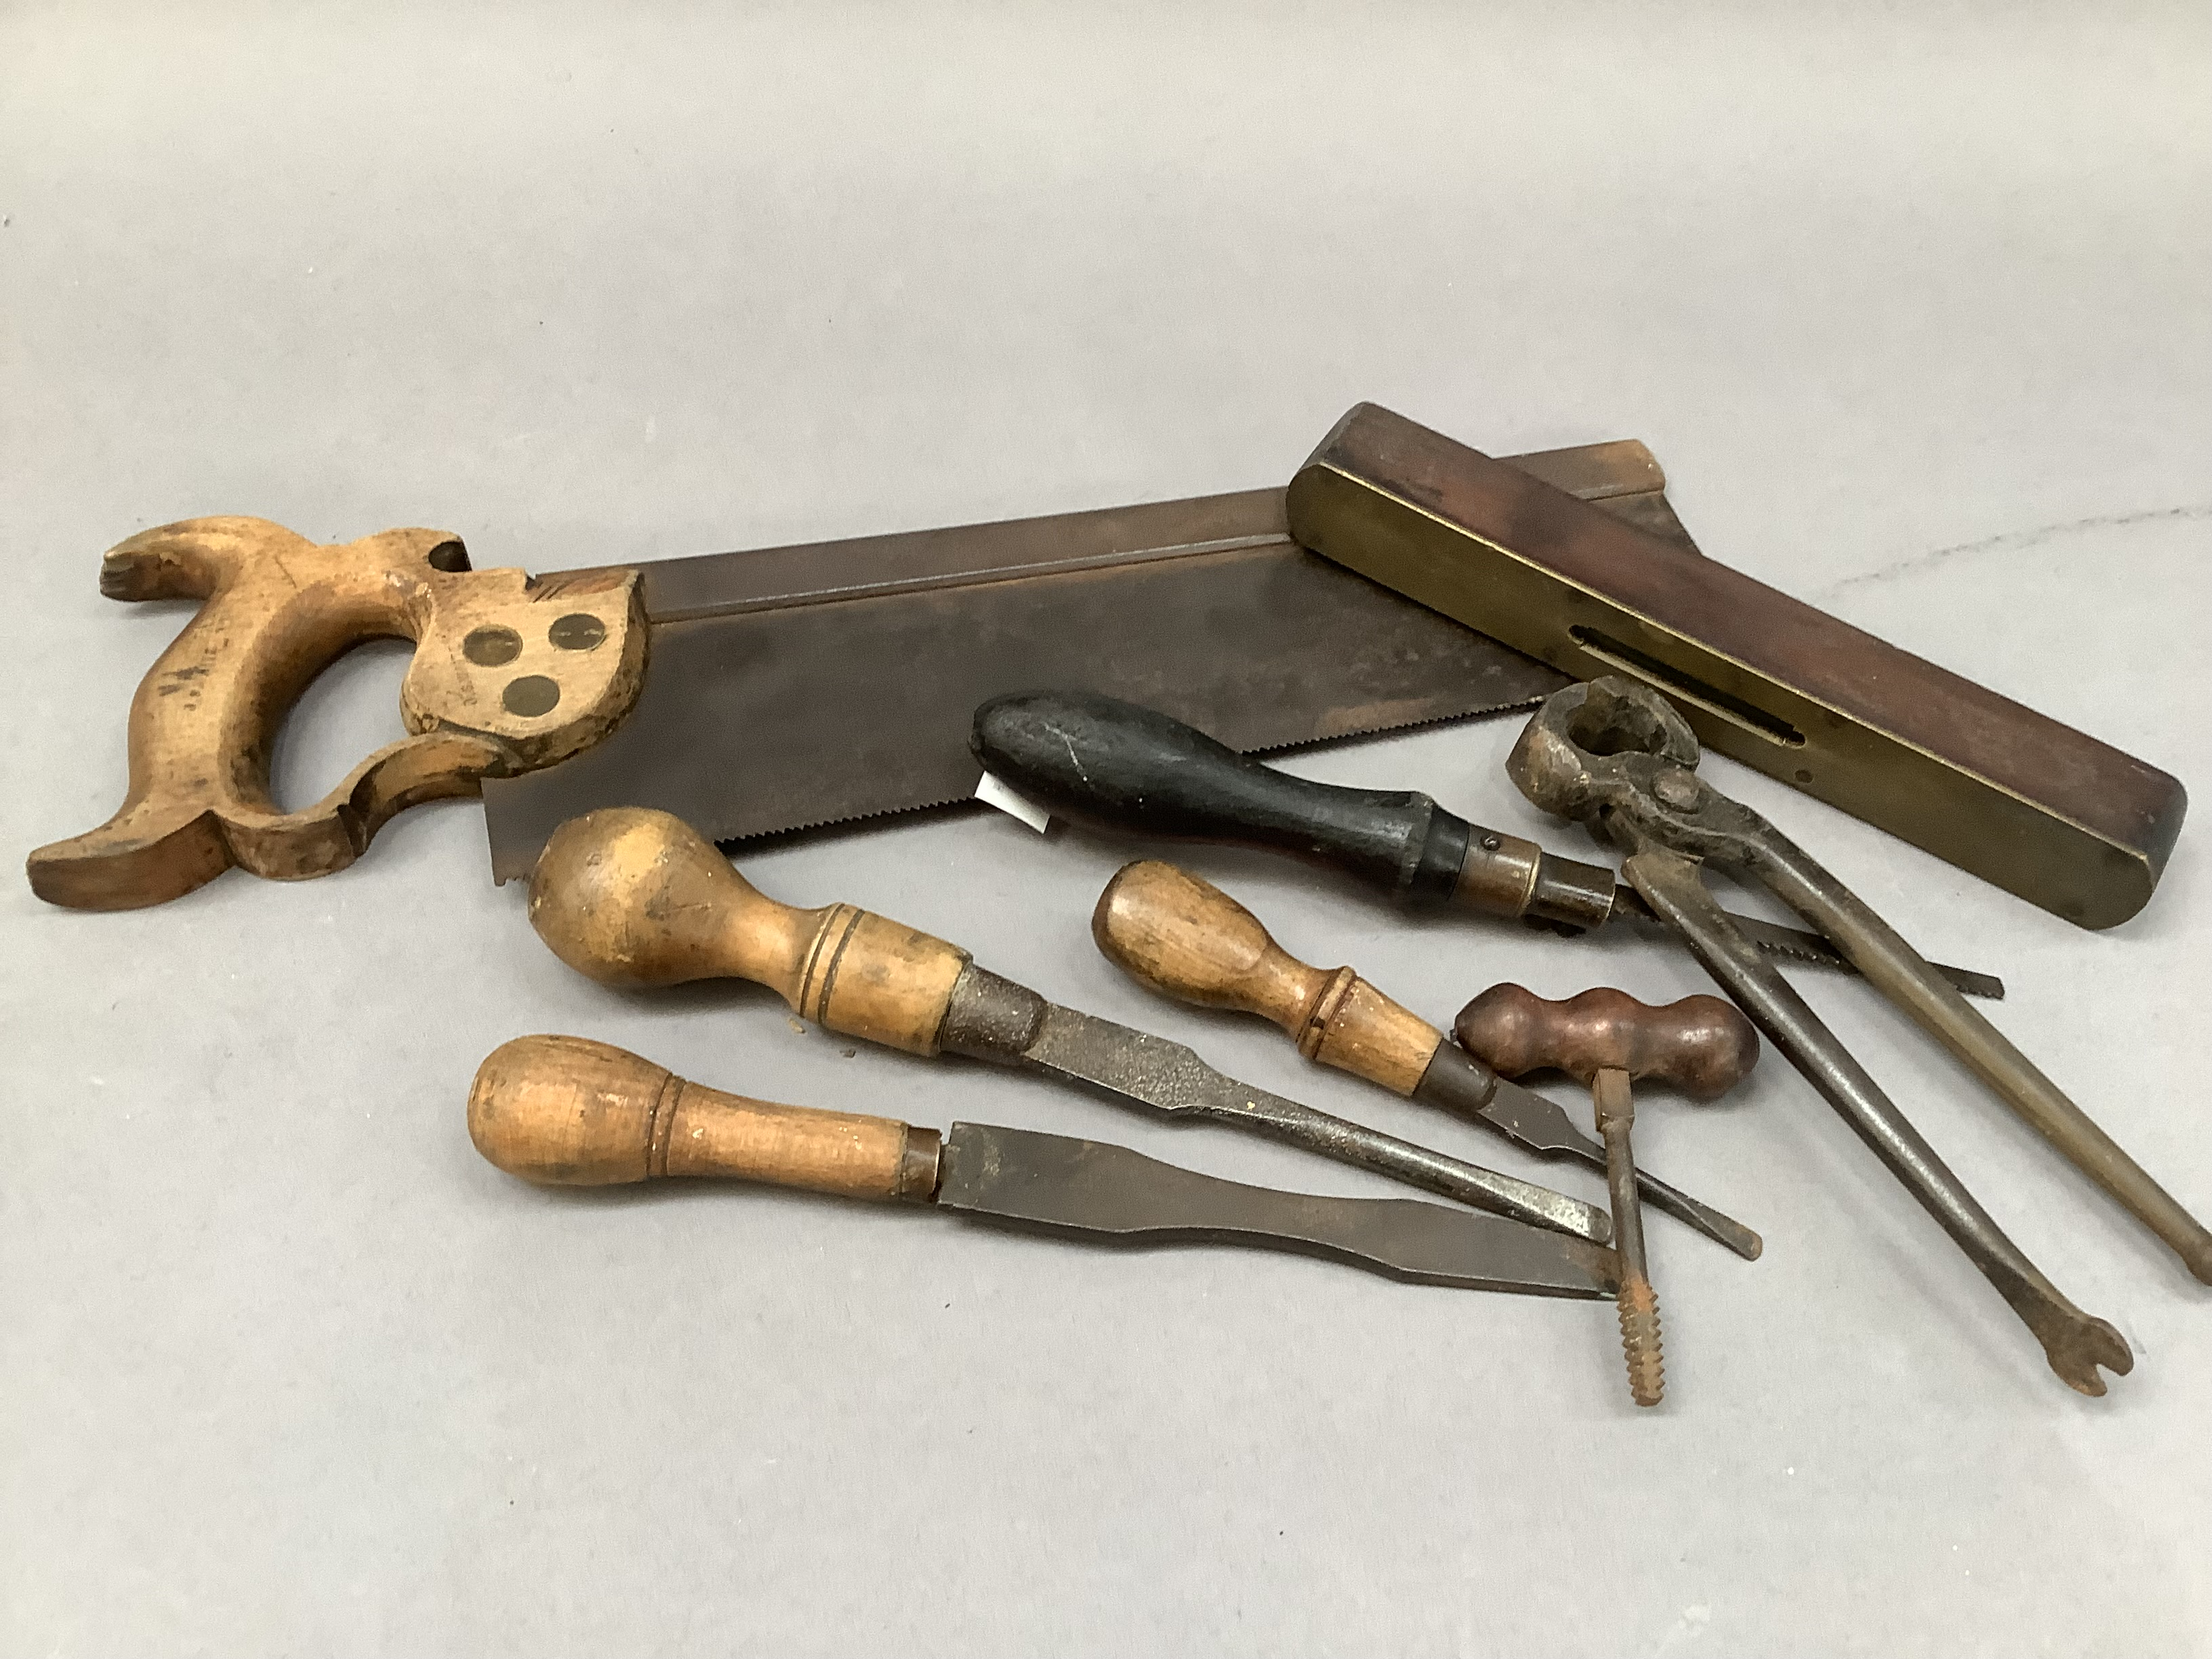 A quantity of vintage hand tools including saw, pliers, screwdrivers, level and hammer